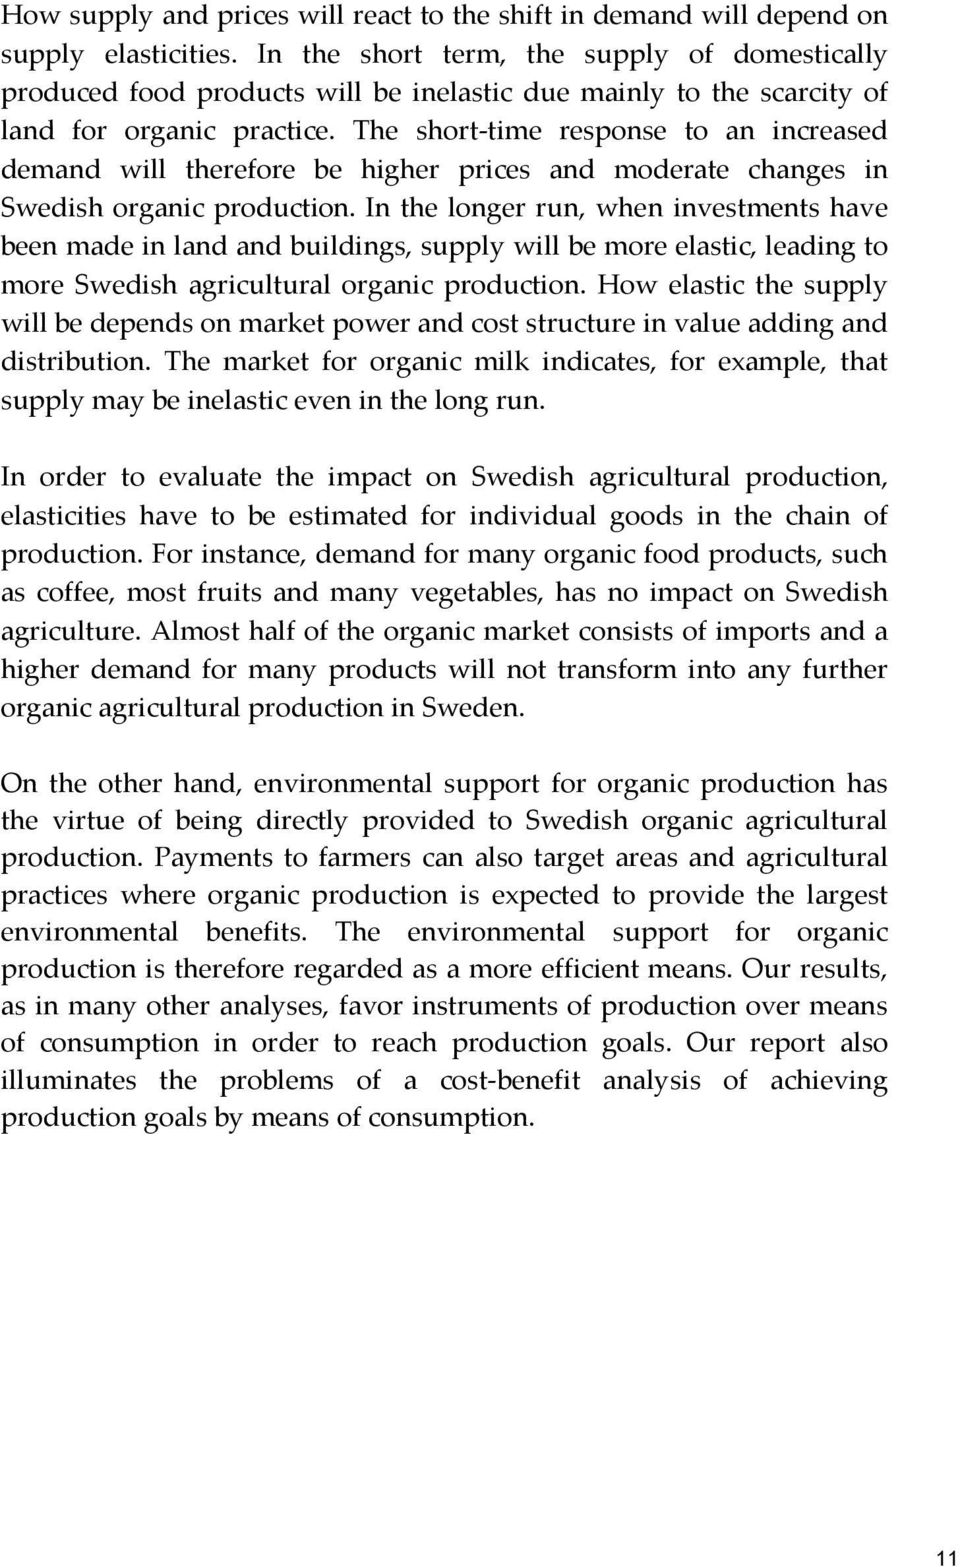 The short-time response to an increased demand will therefore be higher prices and moderate changes in Swedish organic production.